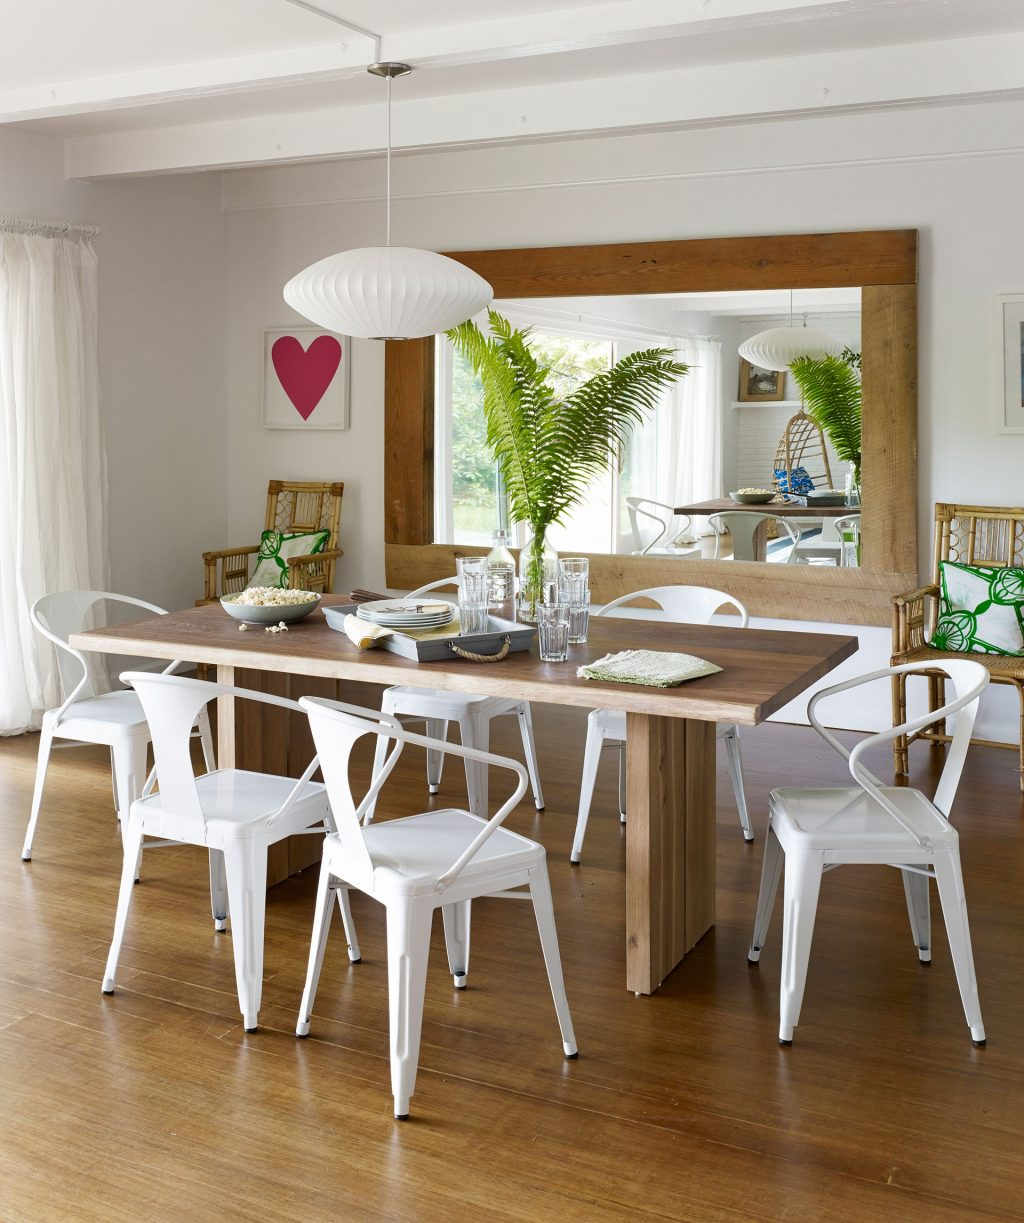 Dining Room Modern Ideas Interior Design Rustic Small Pinterest From